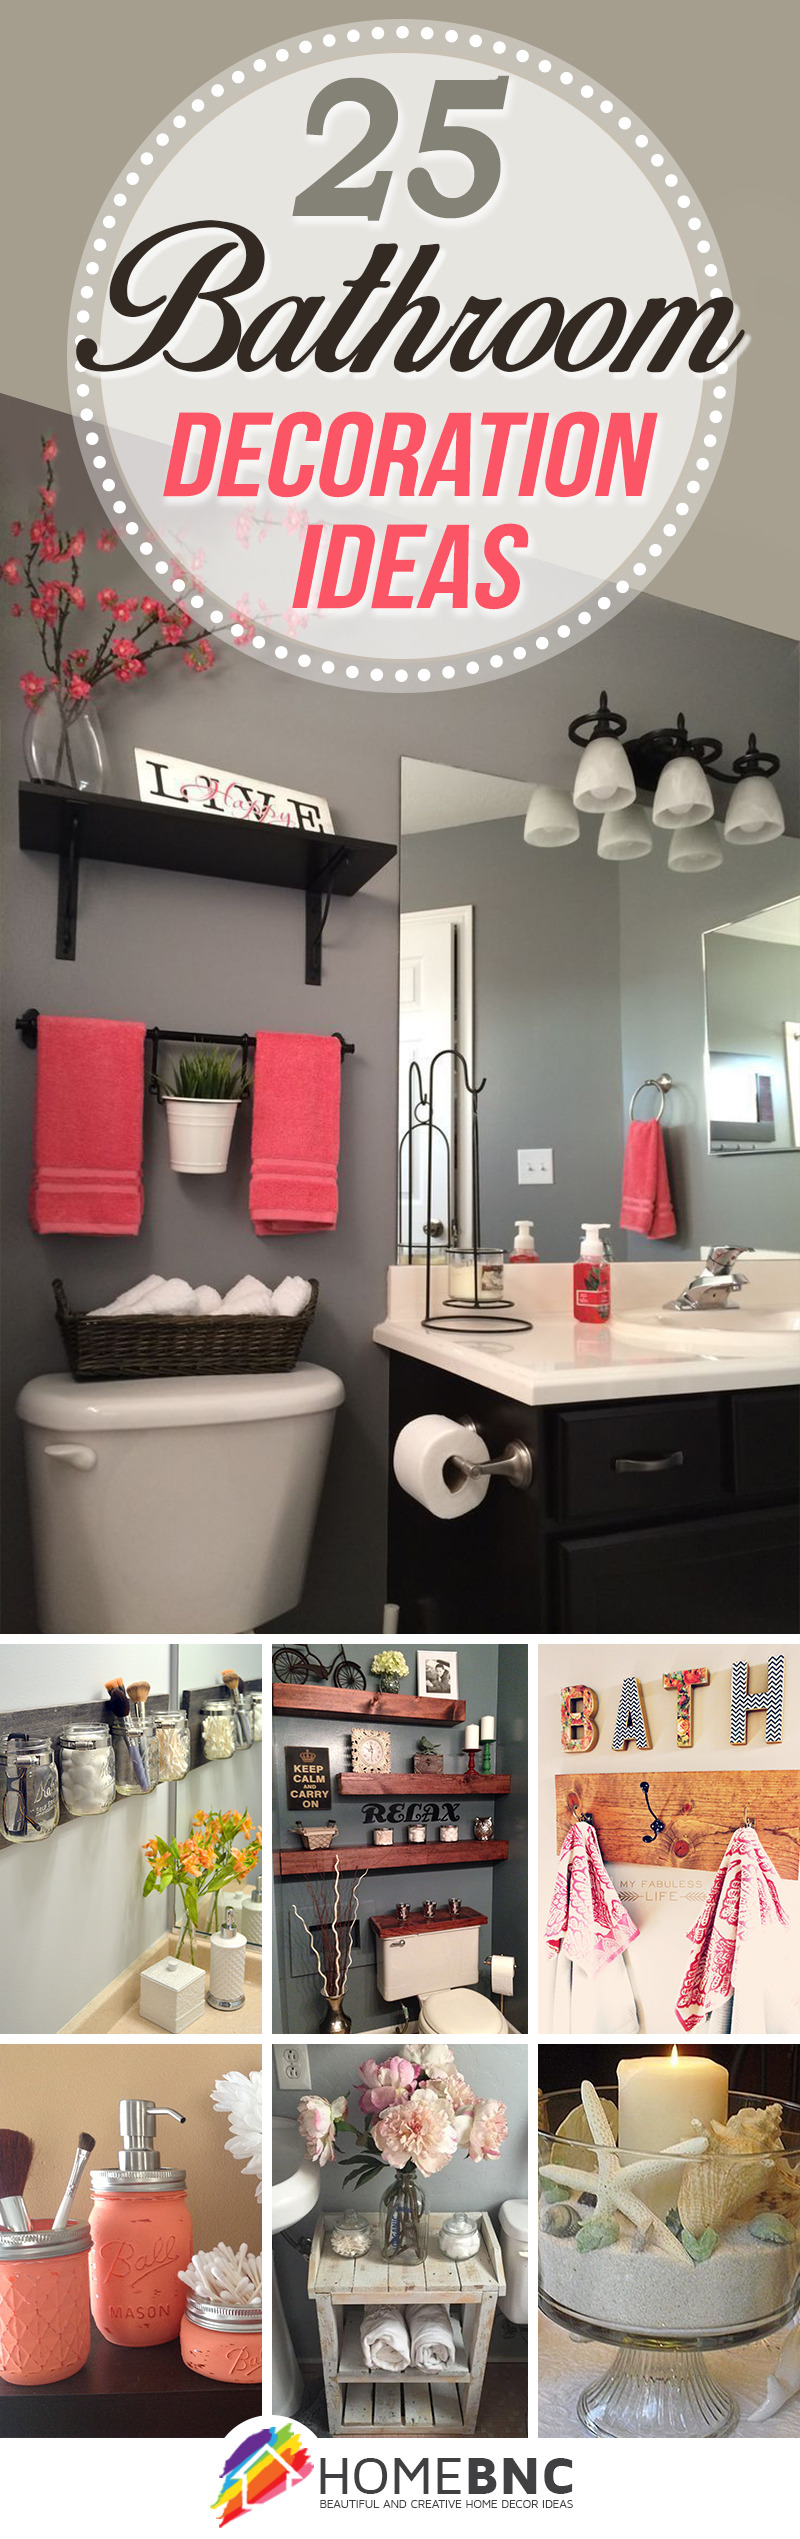 bathroom decor ideas pinterest share homebnc